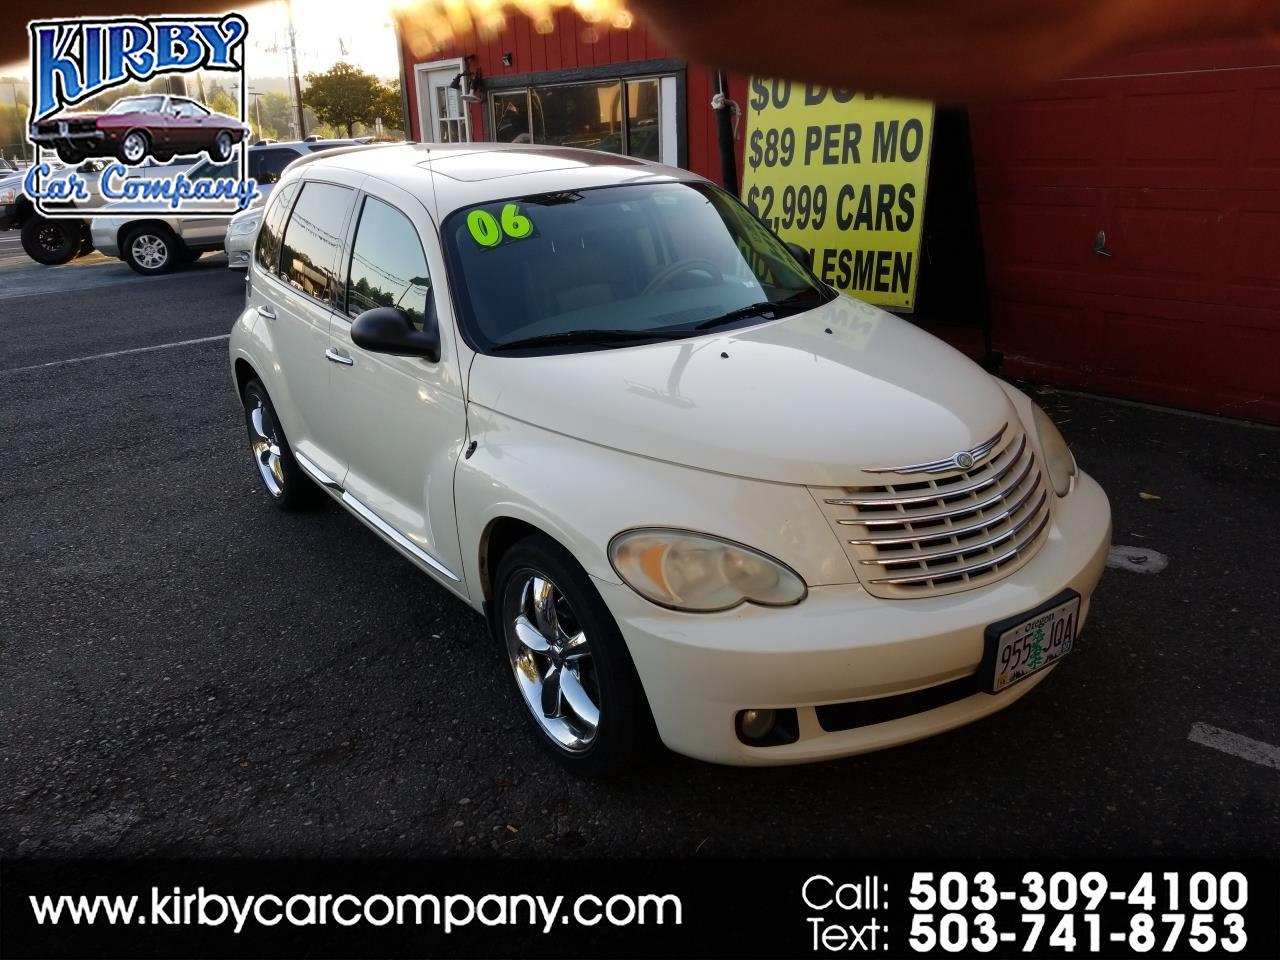 2006 Chrysler PT Cruiser GT Auto  Leather  Moon  Mags  Spoiler  113K